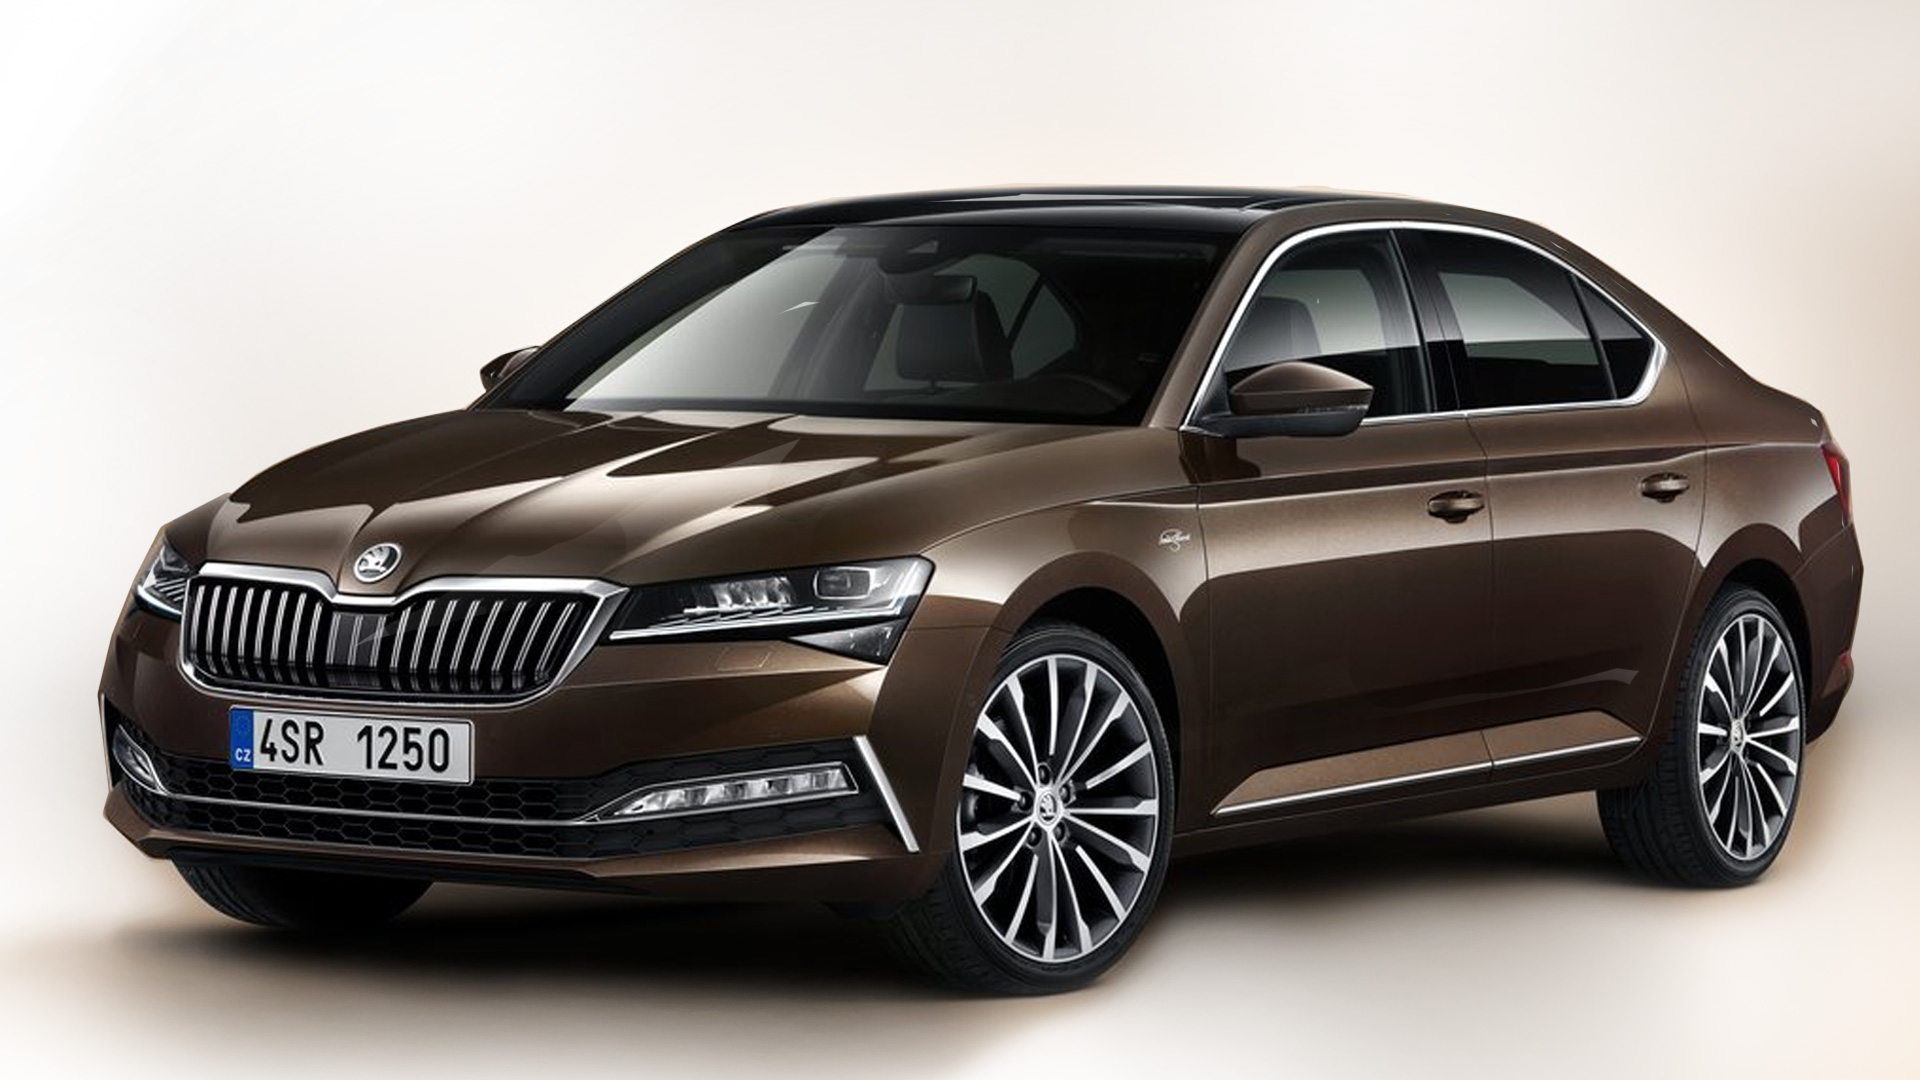 Skoda Superb 2020 2.0 TSI (AT) L & K